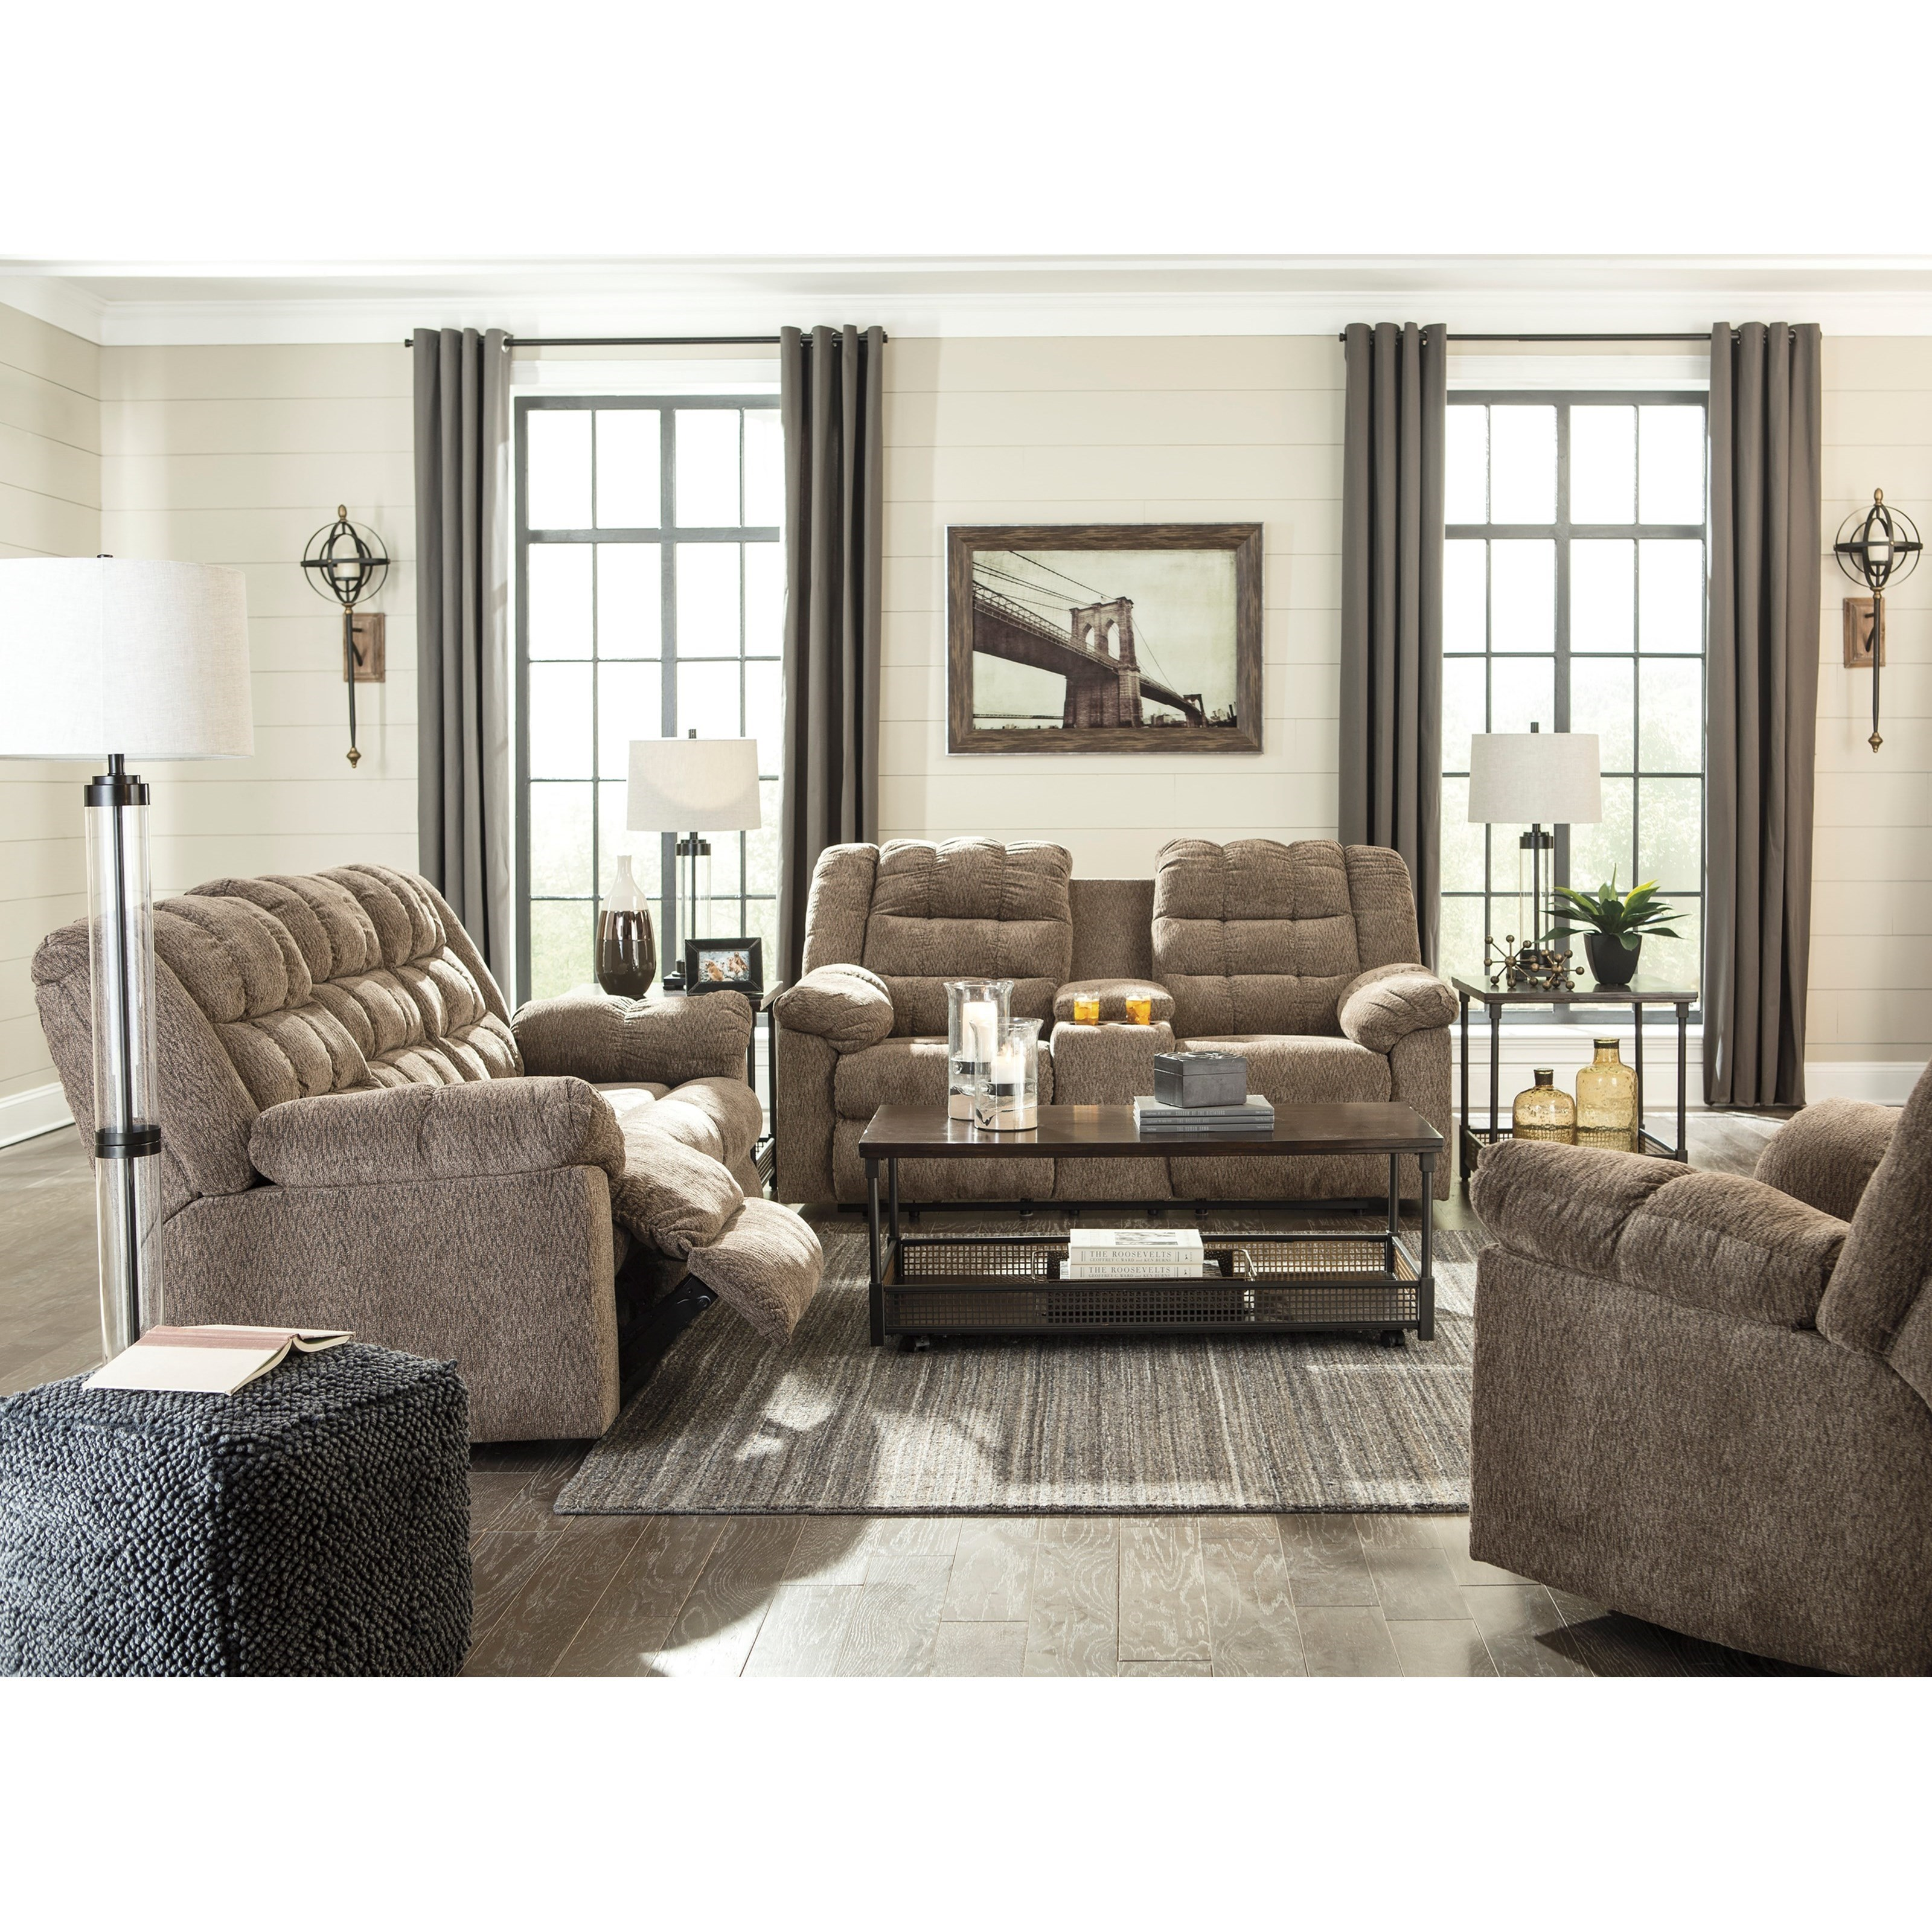 Good Signature Design By Ashley Workhorse Reclining Living Room Group Pictures